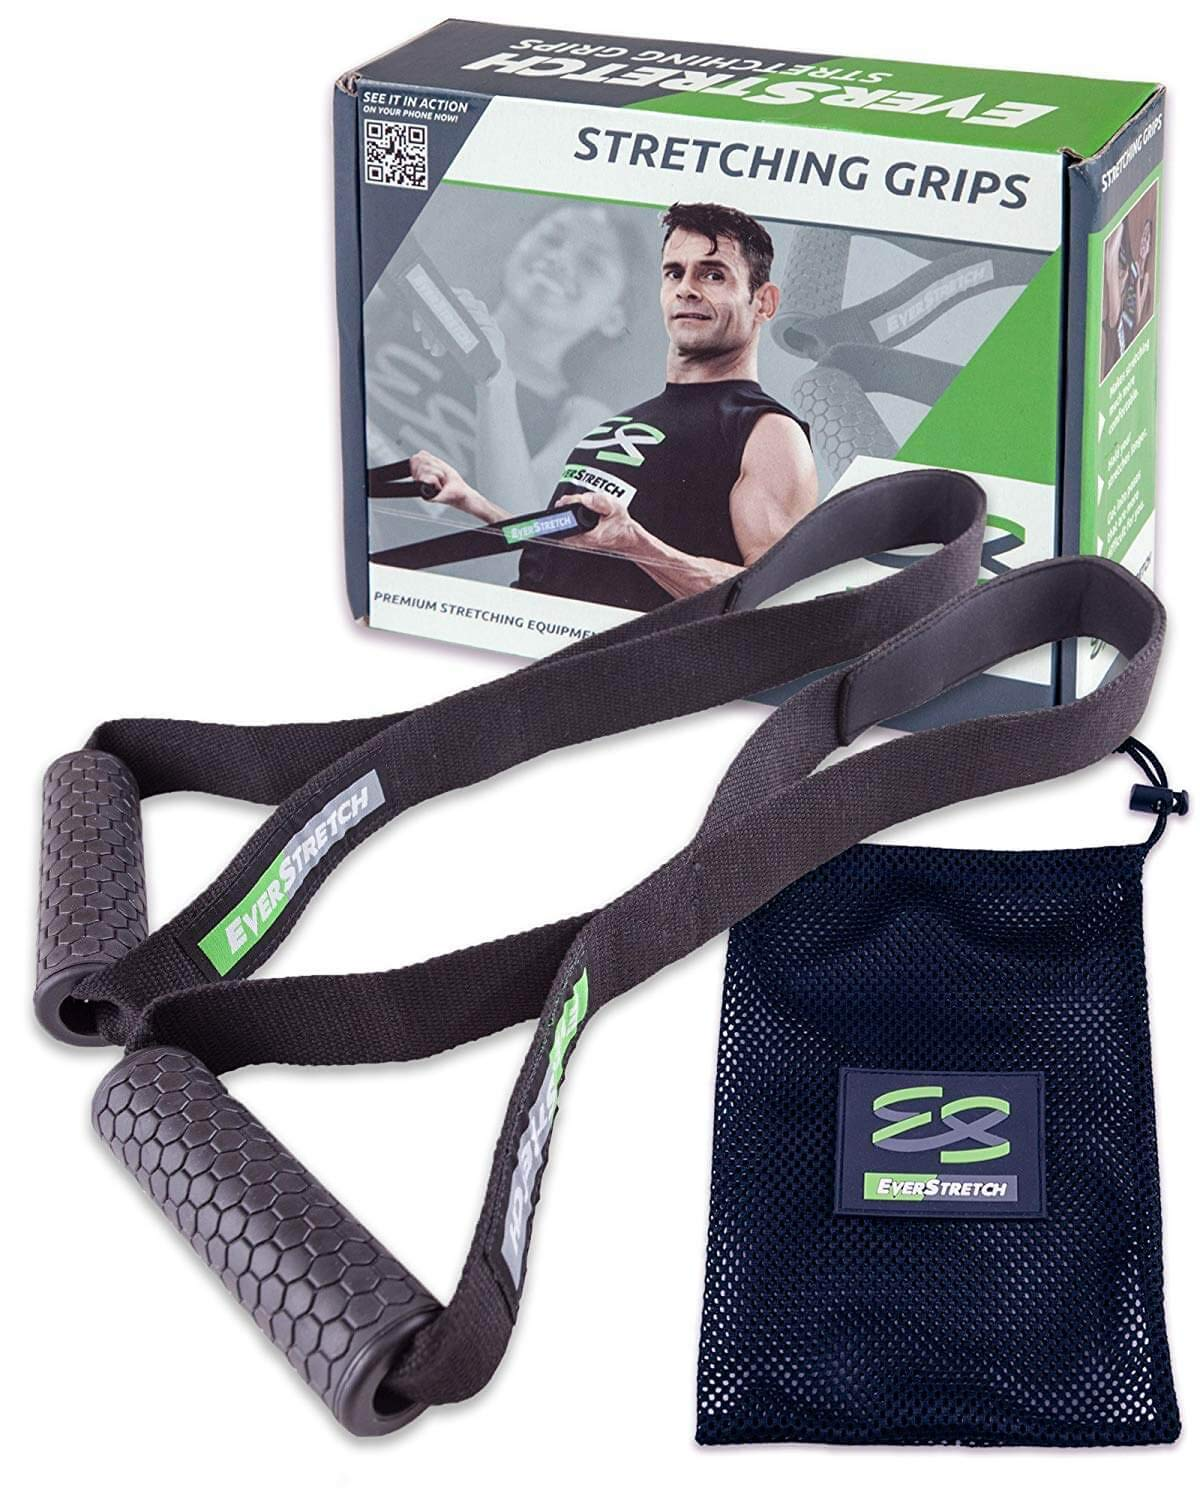 EverStretch Stretching Grips Premium Stretching Equipment for Athletes. Stretch Straps to Reach Impossible Positions Without Discomfort. XESA04AGRIPIFC